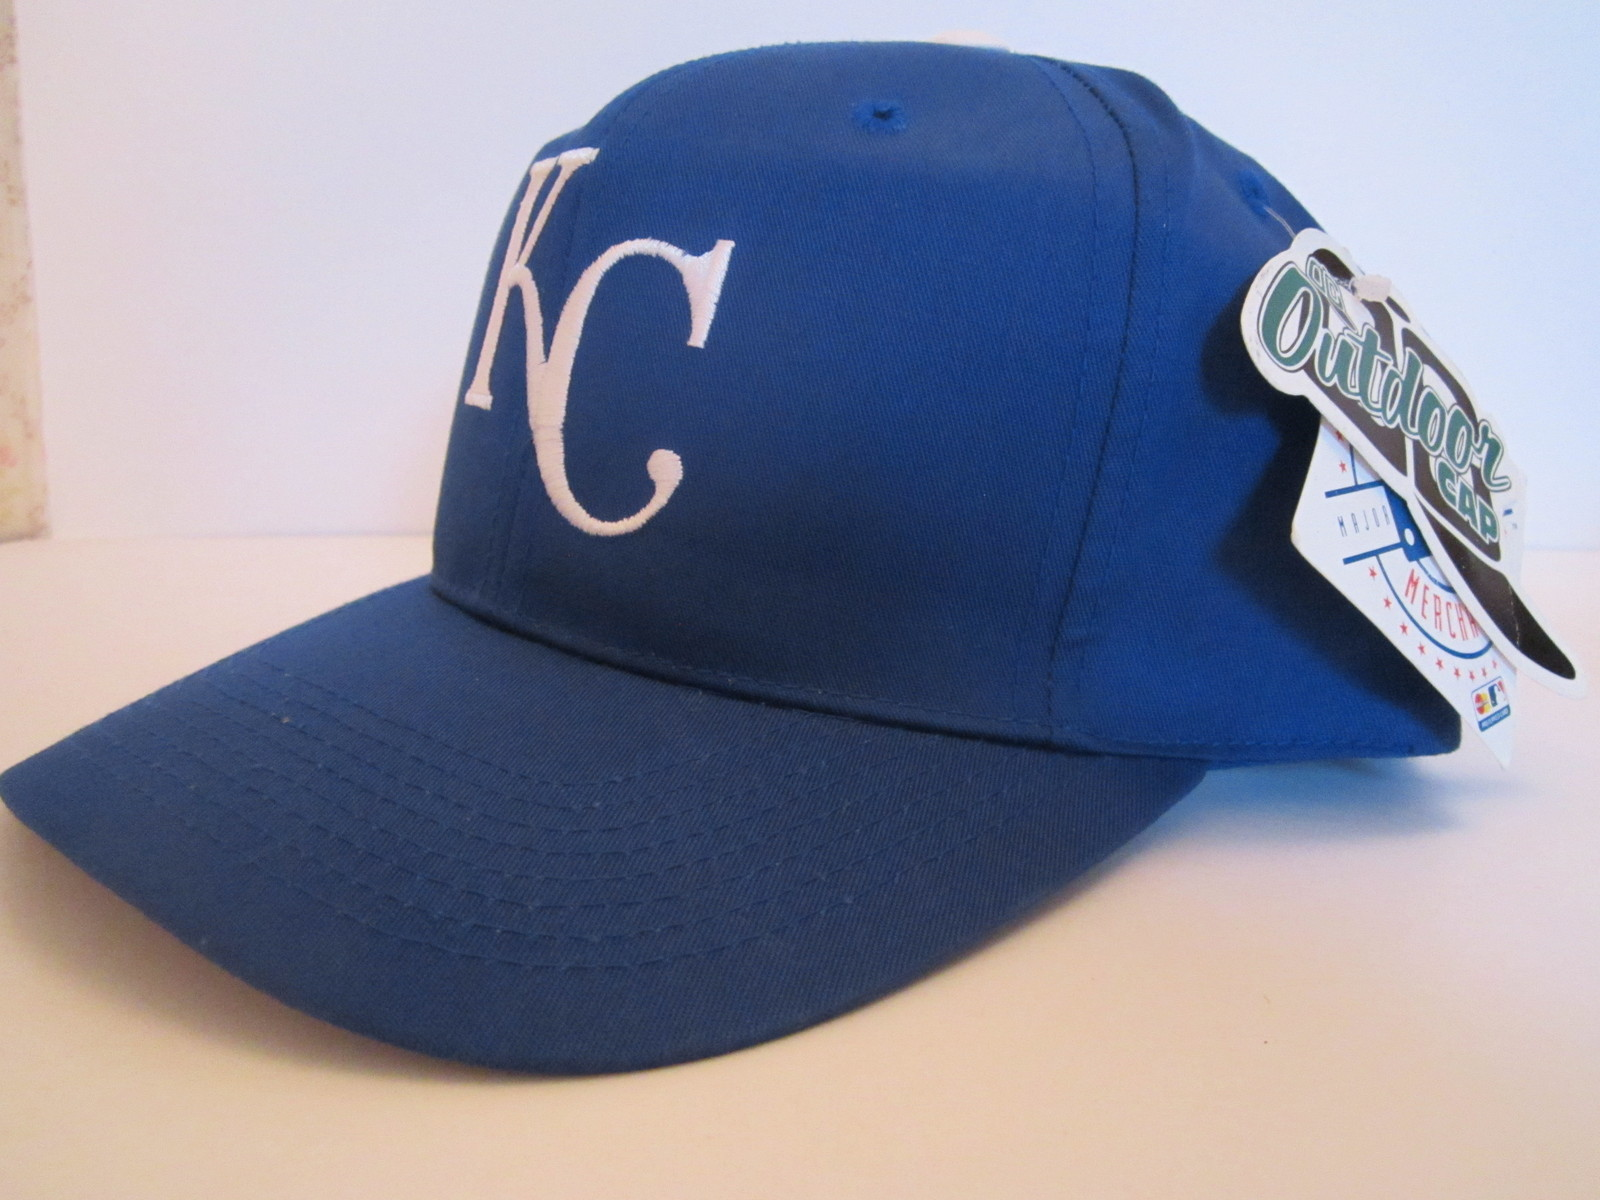 Primary image for Kansas City Royals Vintage Late 90's MLB Structured Home Logo Ball Cap by OC